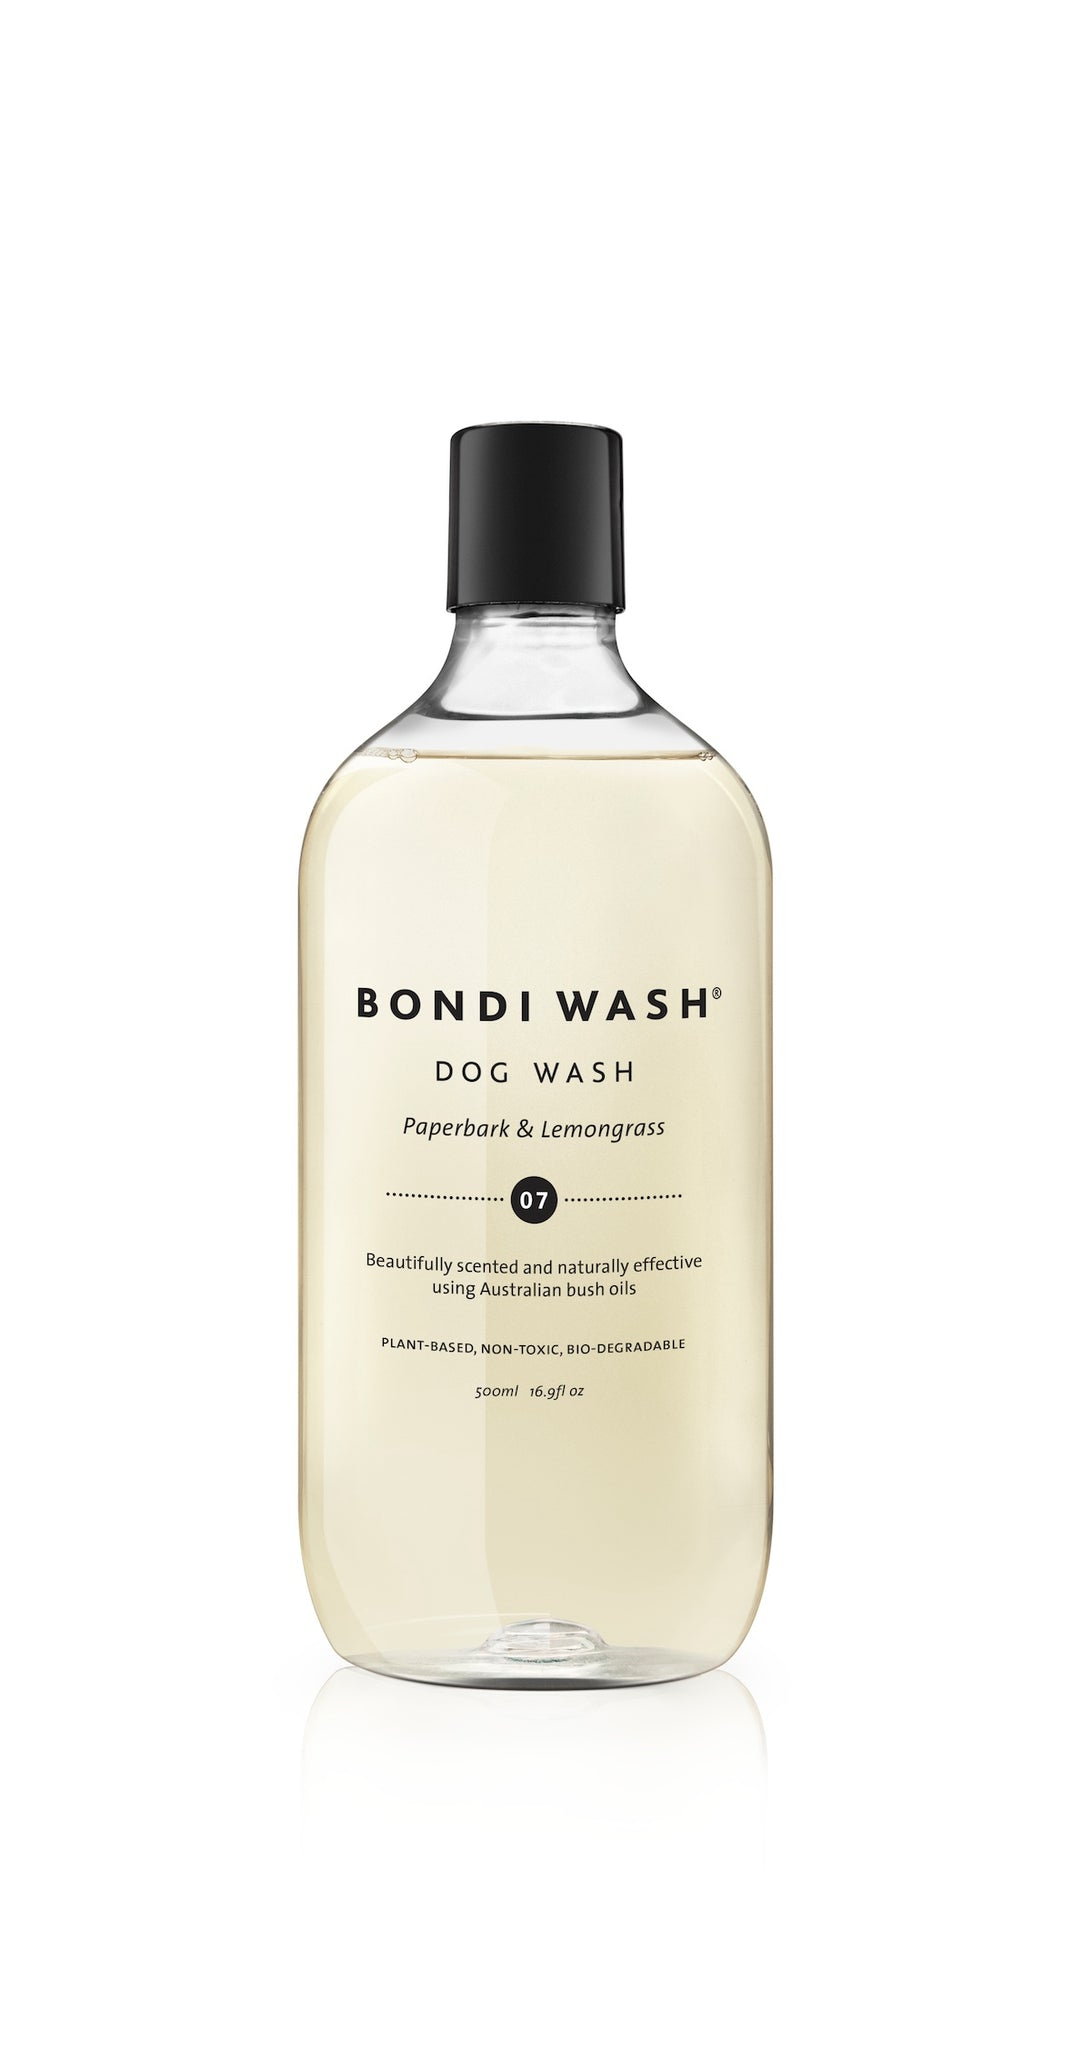 Bondi Wash, Bondi Wash Australia, Gemaakt met Australische Botanicals, Nourished Nederland & Bondi Wash, Dog Wash, Natural Dog Wash, Dog Conditioner, Natural Dog Conditioner, Kennel Spray.